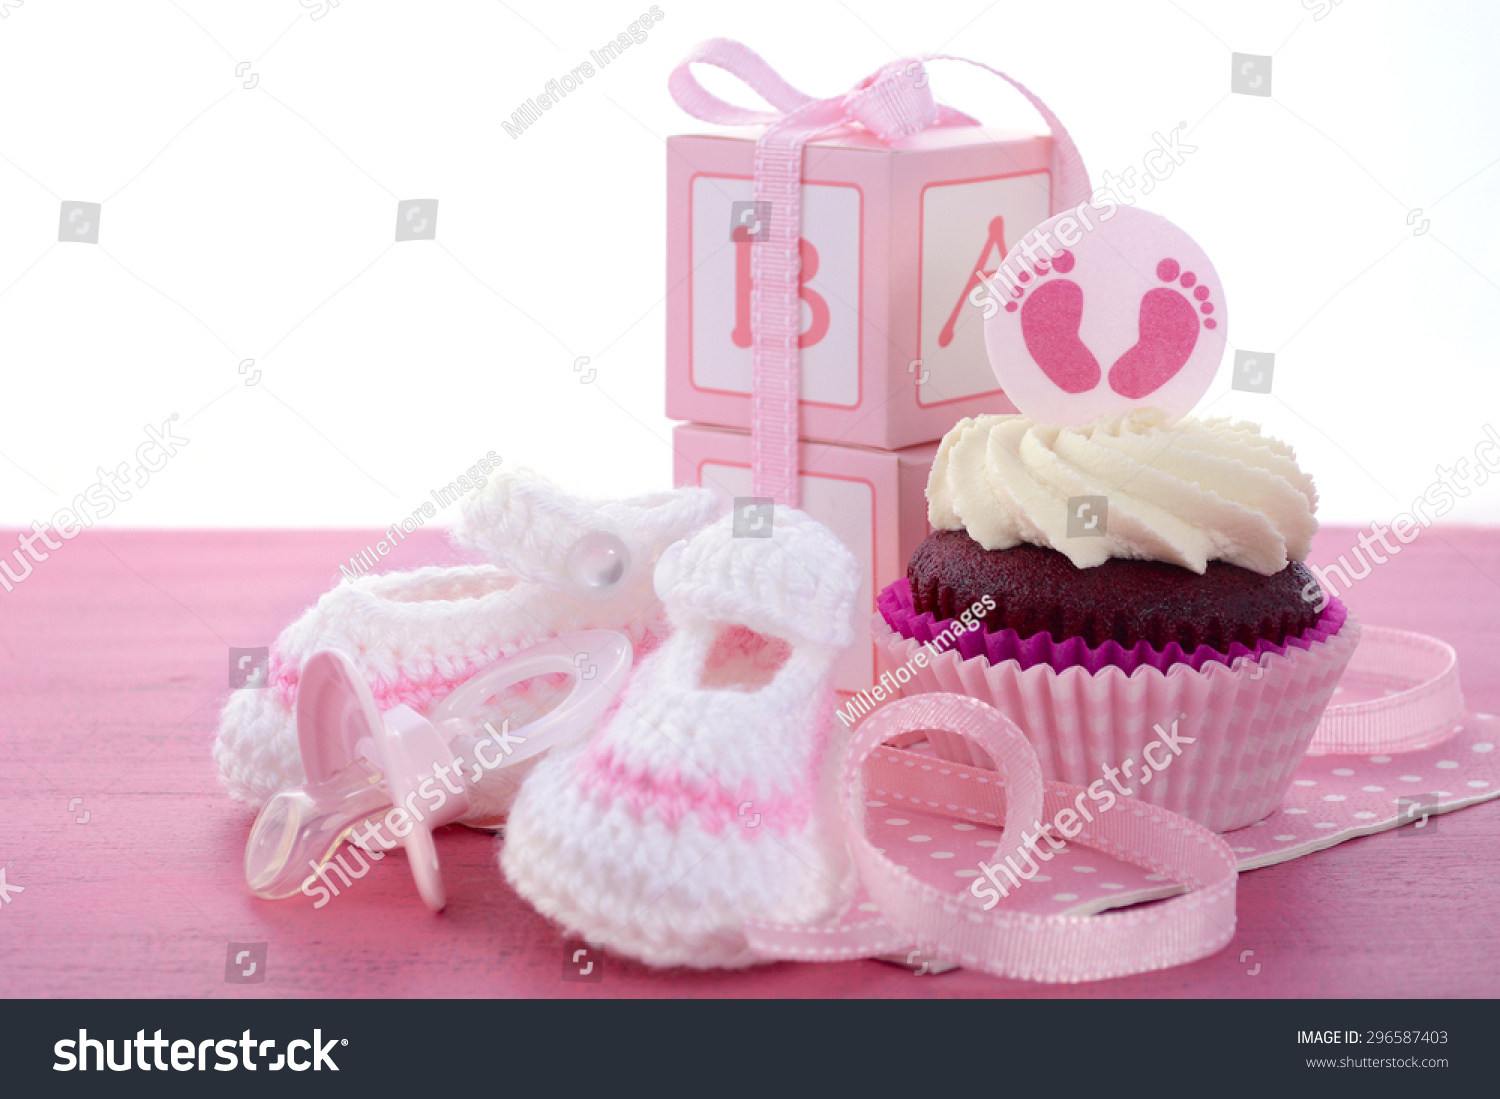 Its A Girl Baby Shower Cupcakes With Baby Feet Toppers And Decorations On  Shabby Chic Pink